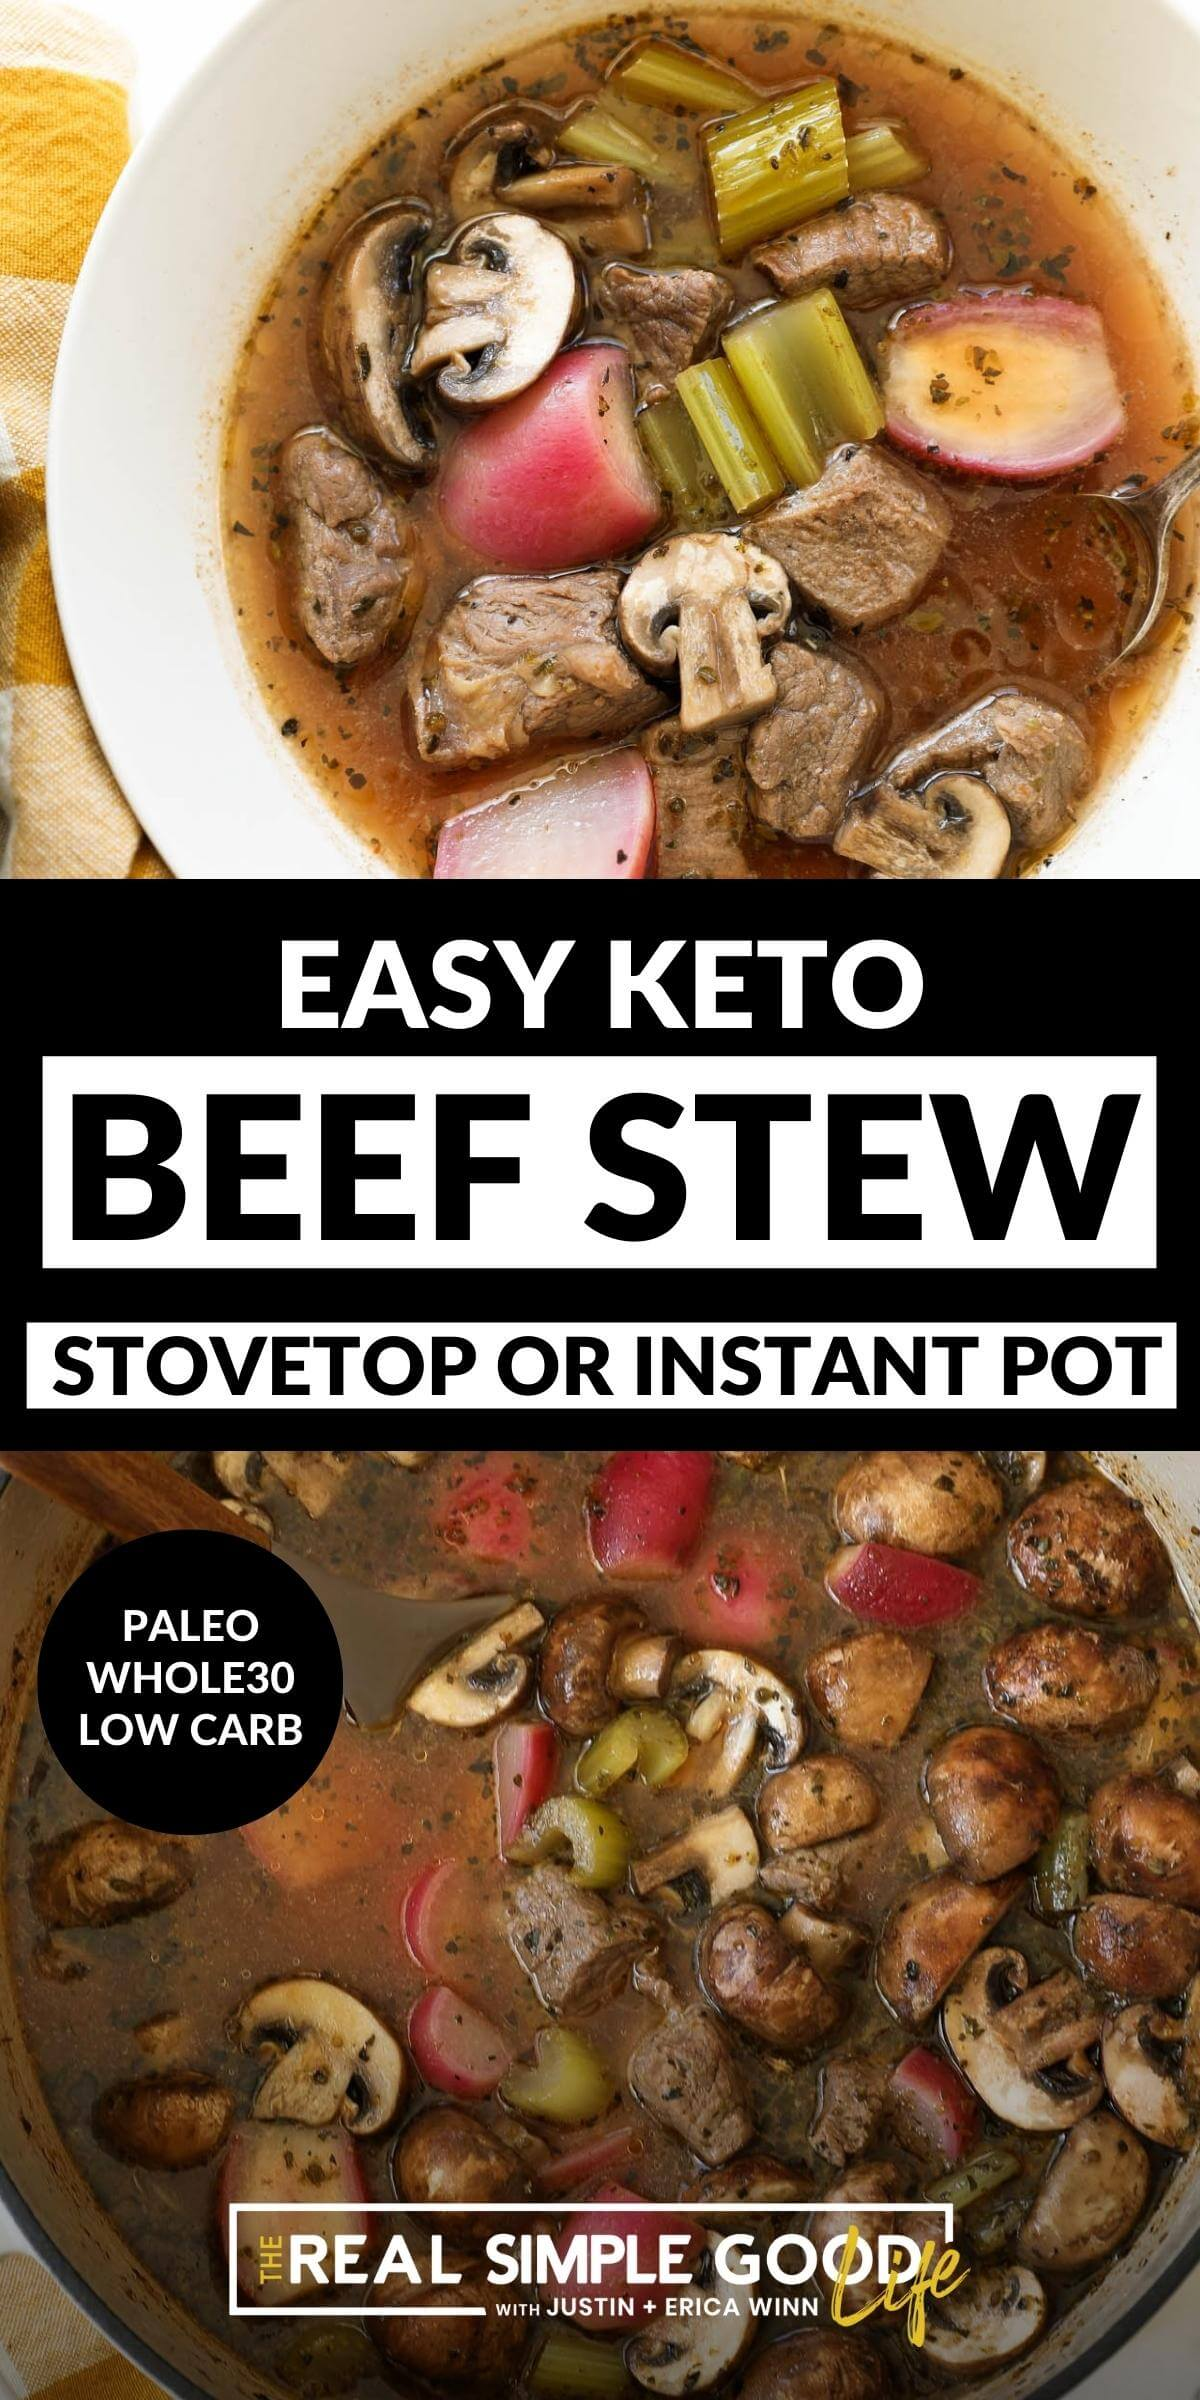 Keto Beef Stew (Stovetop or Instant Pot)